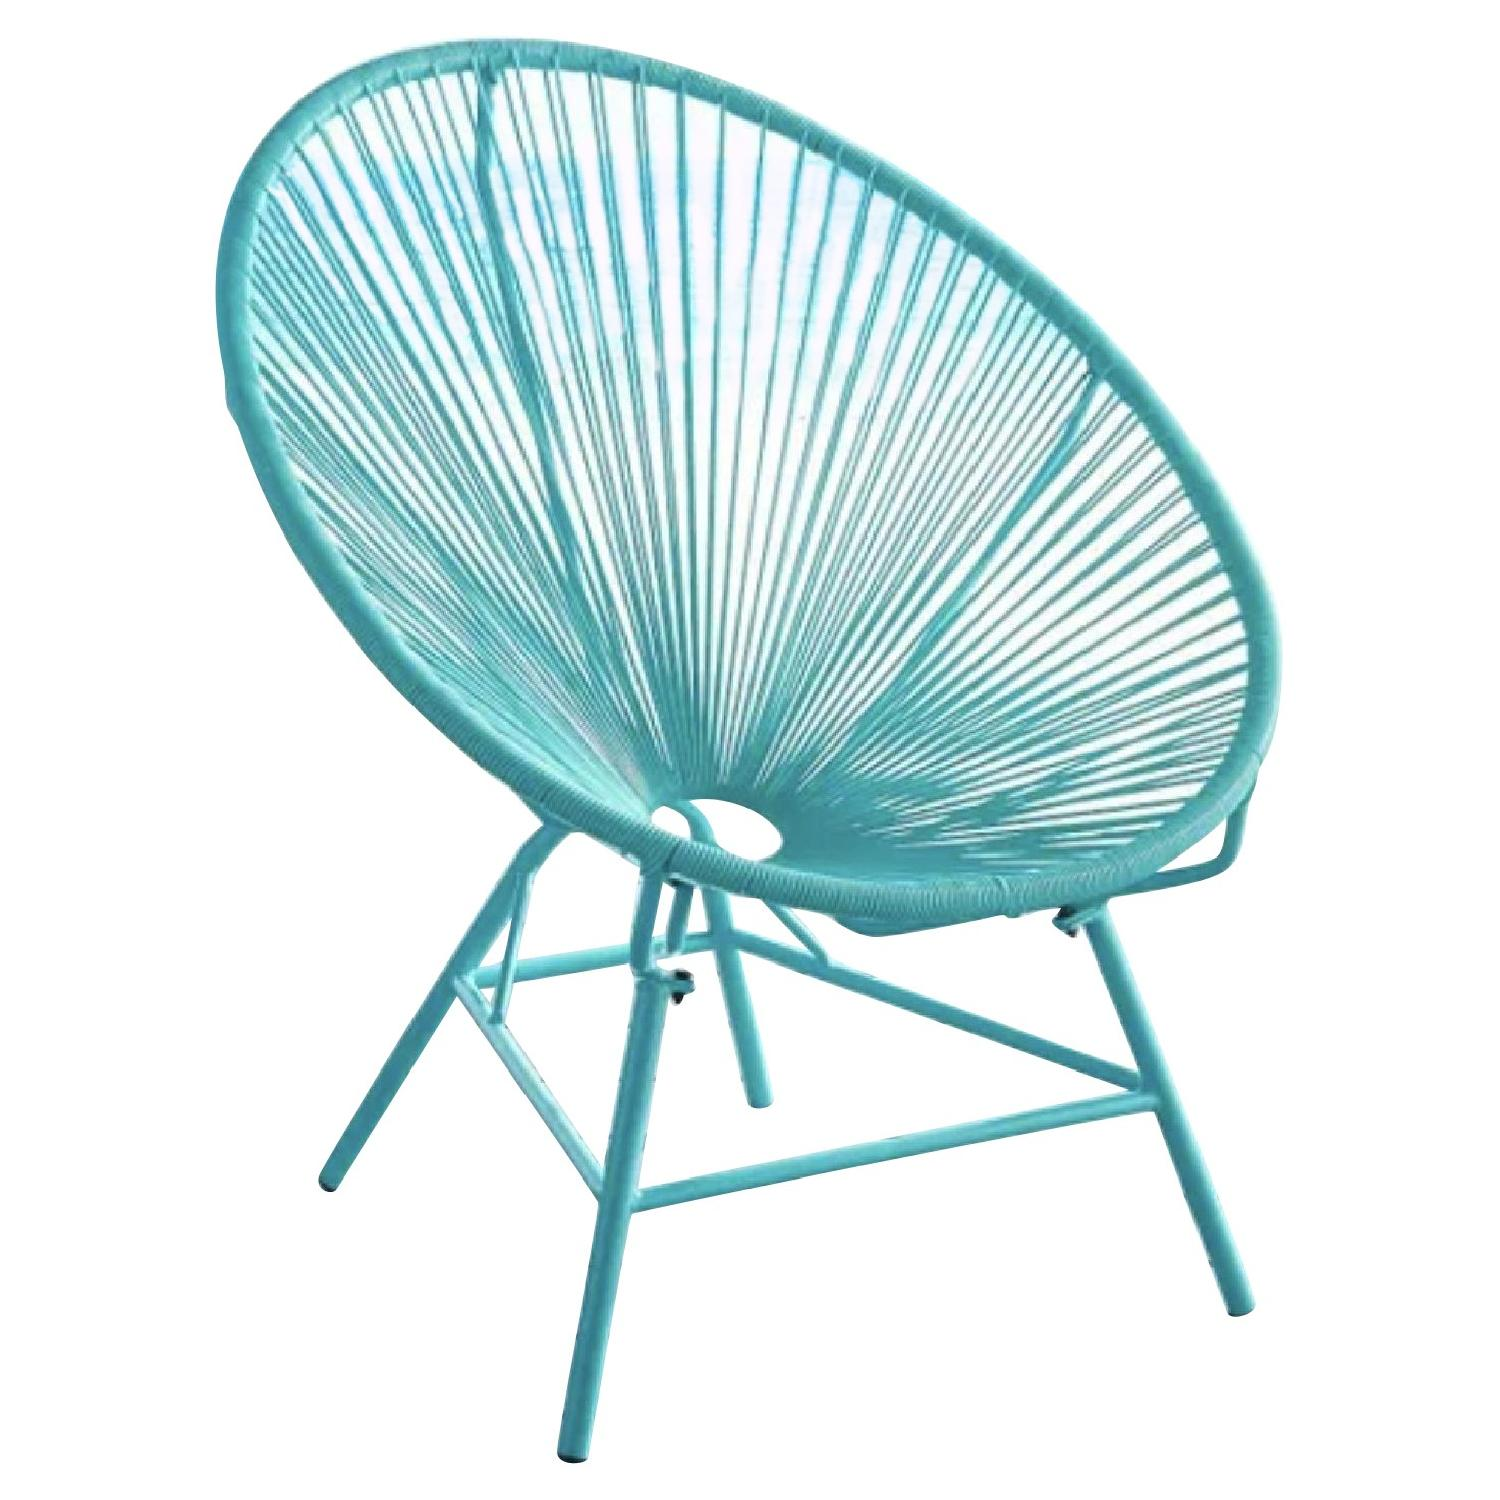 Pier 1 Luca Oval Turquoise Chair